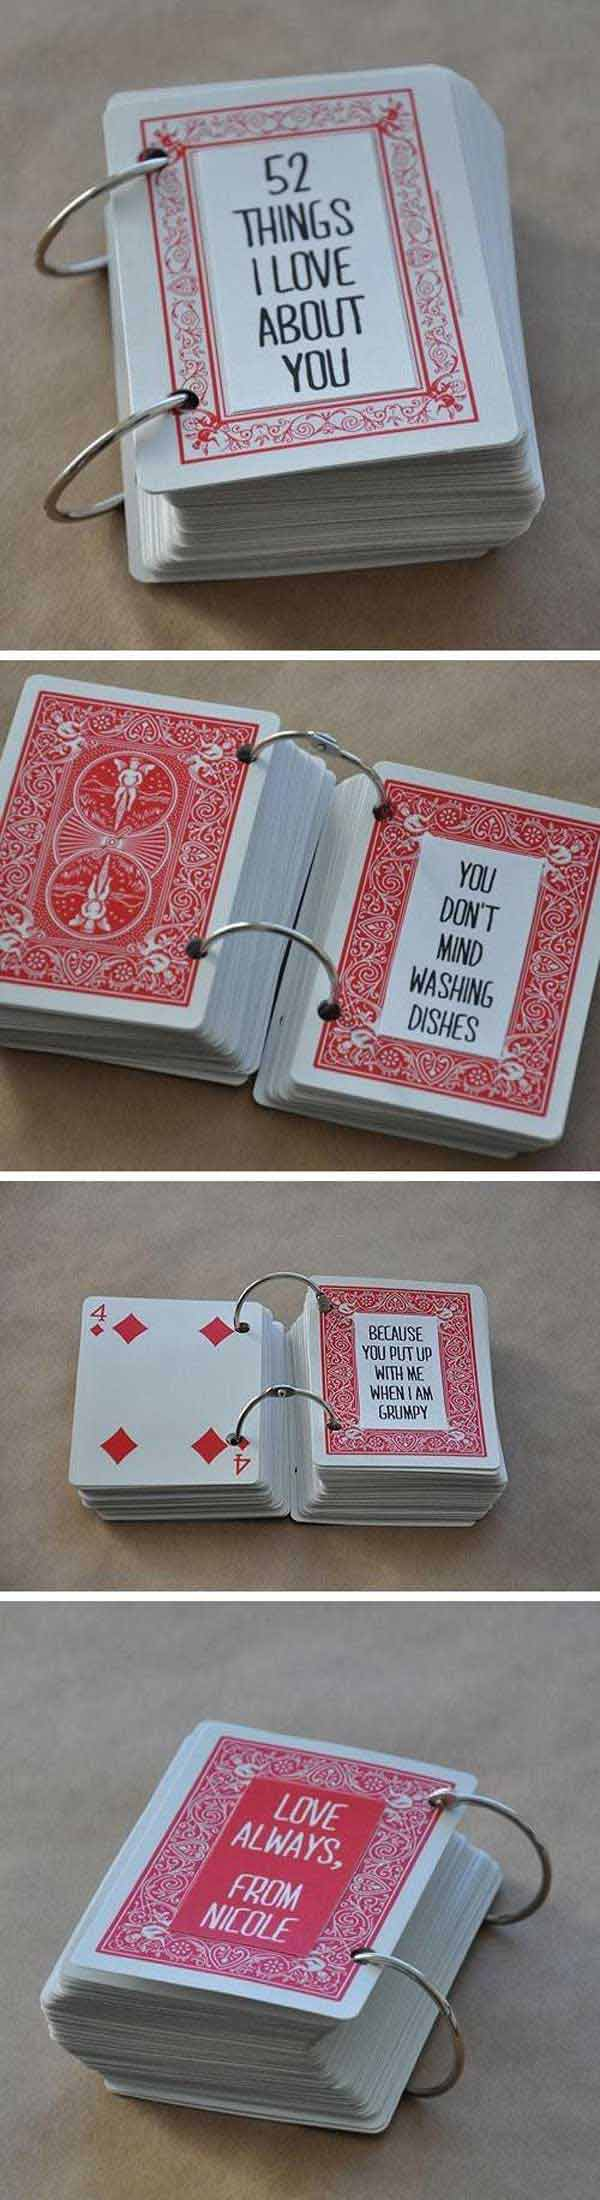 25 easy diy valentines day gift and card ideas amazing diy